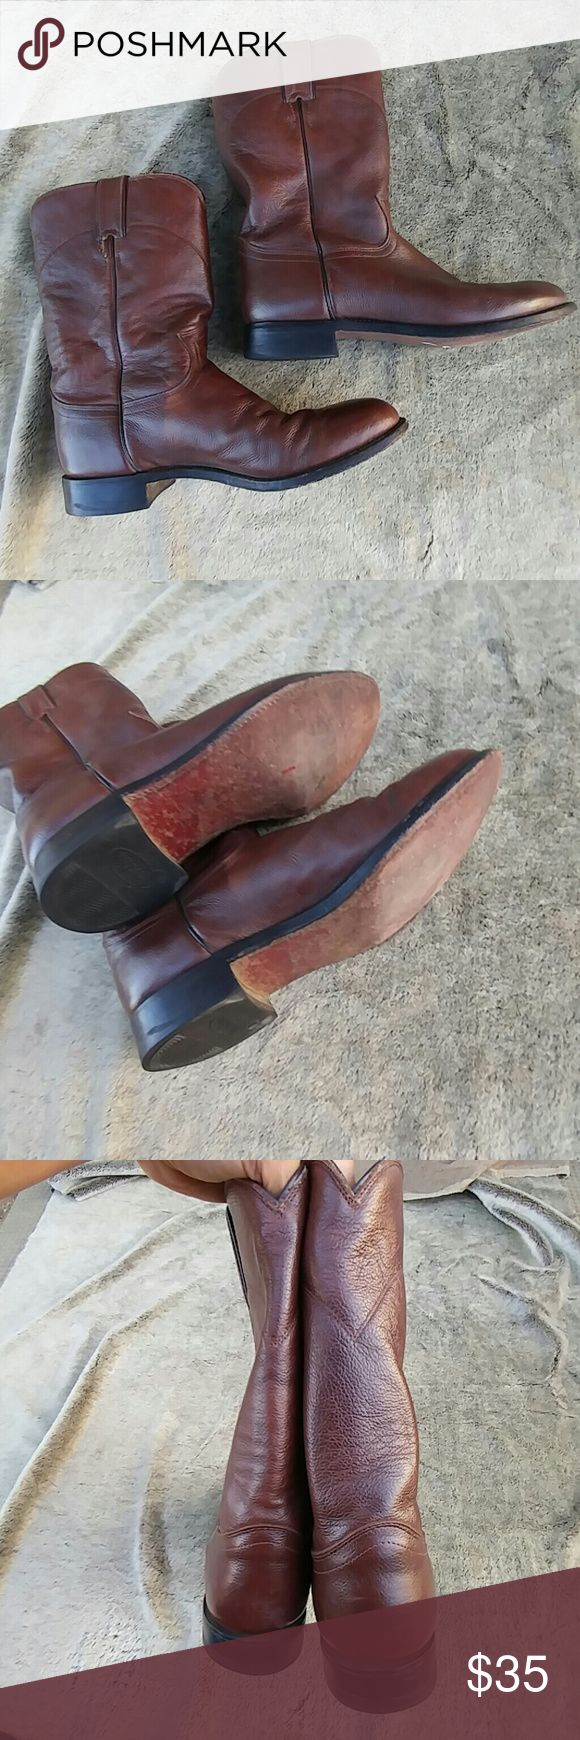 Justin Tan Corona Roper boot Pre owned Justin boots for men size 9 in great condition. One scuff on toe**see pics for details** everything else is in excellent condition. Justin Boots Shoes Boots